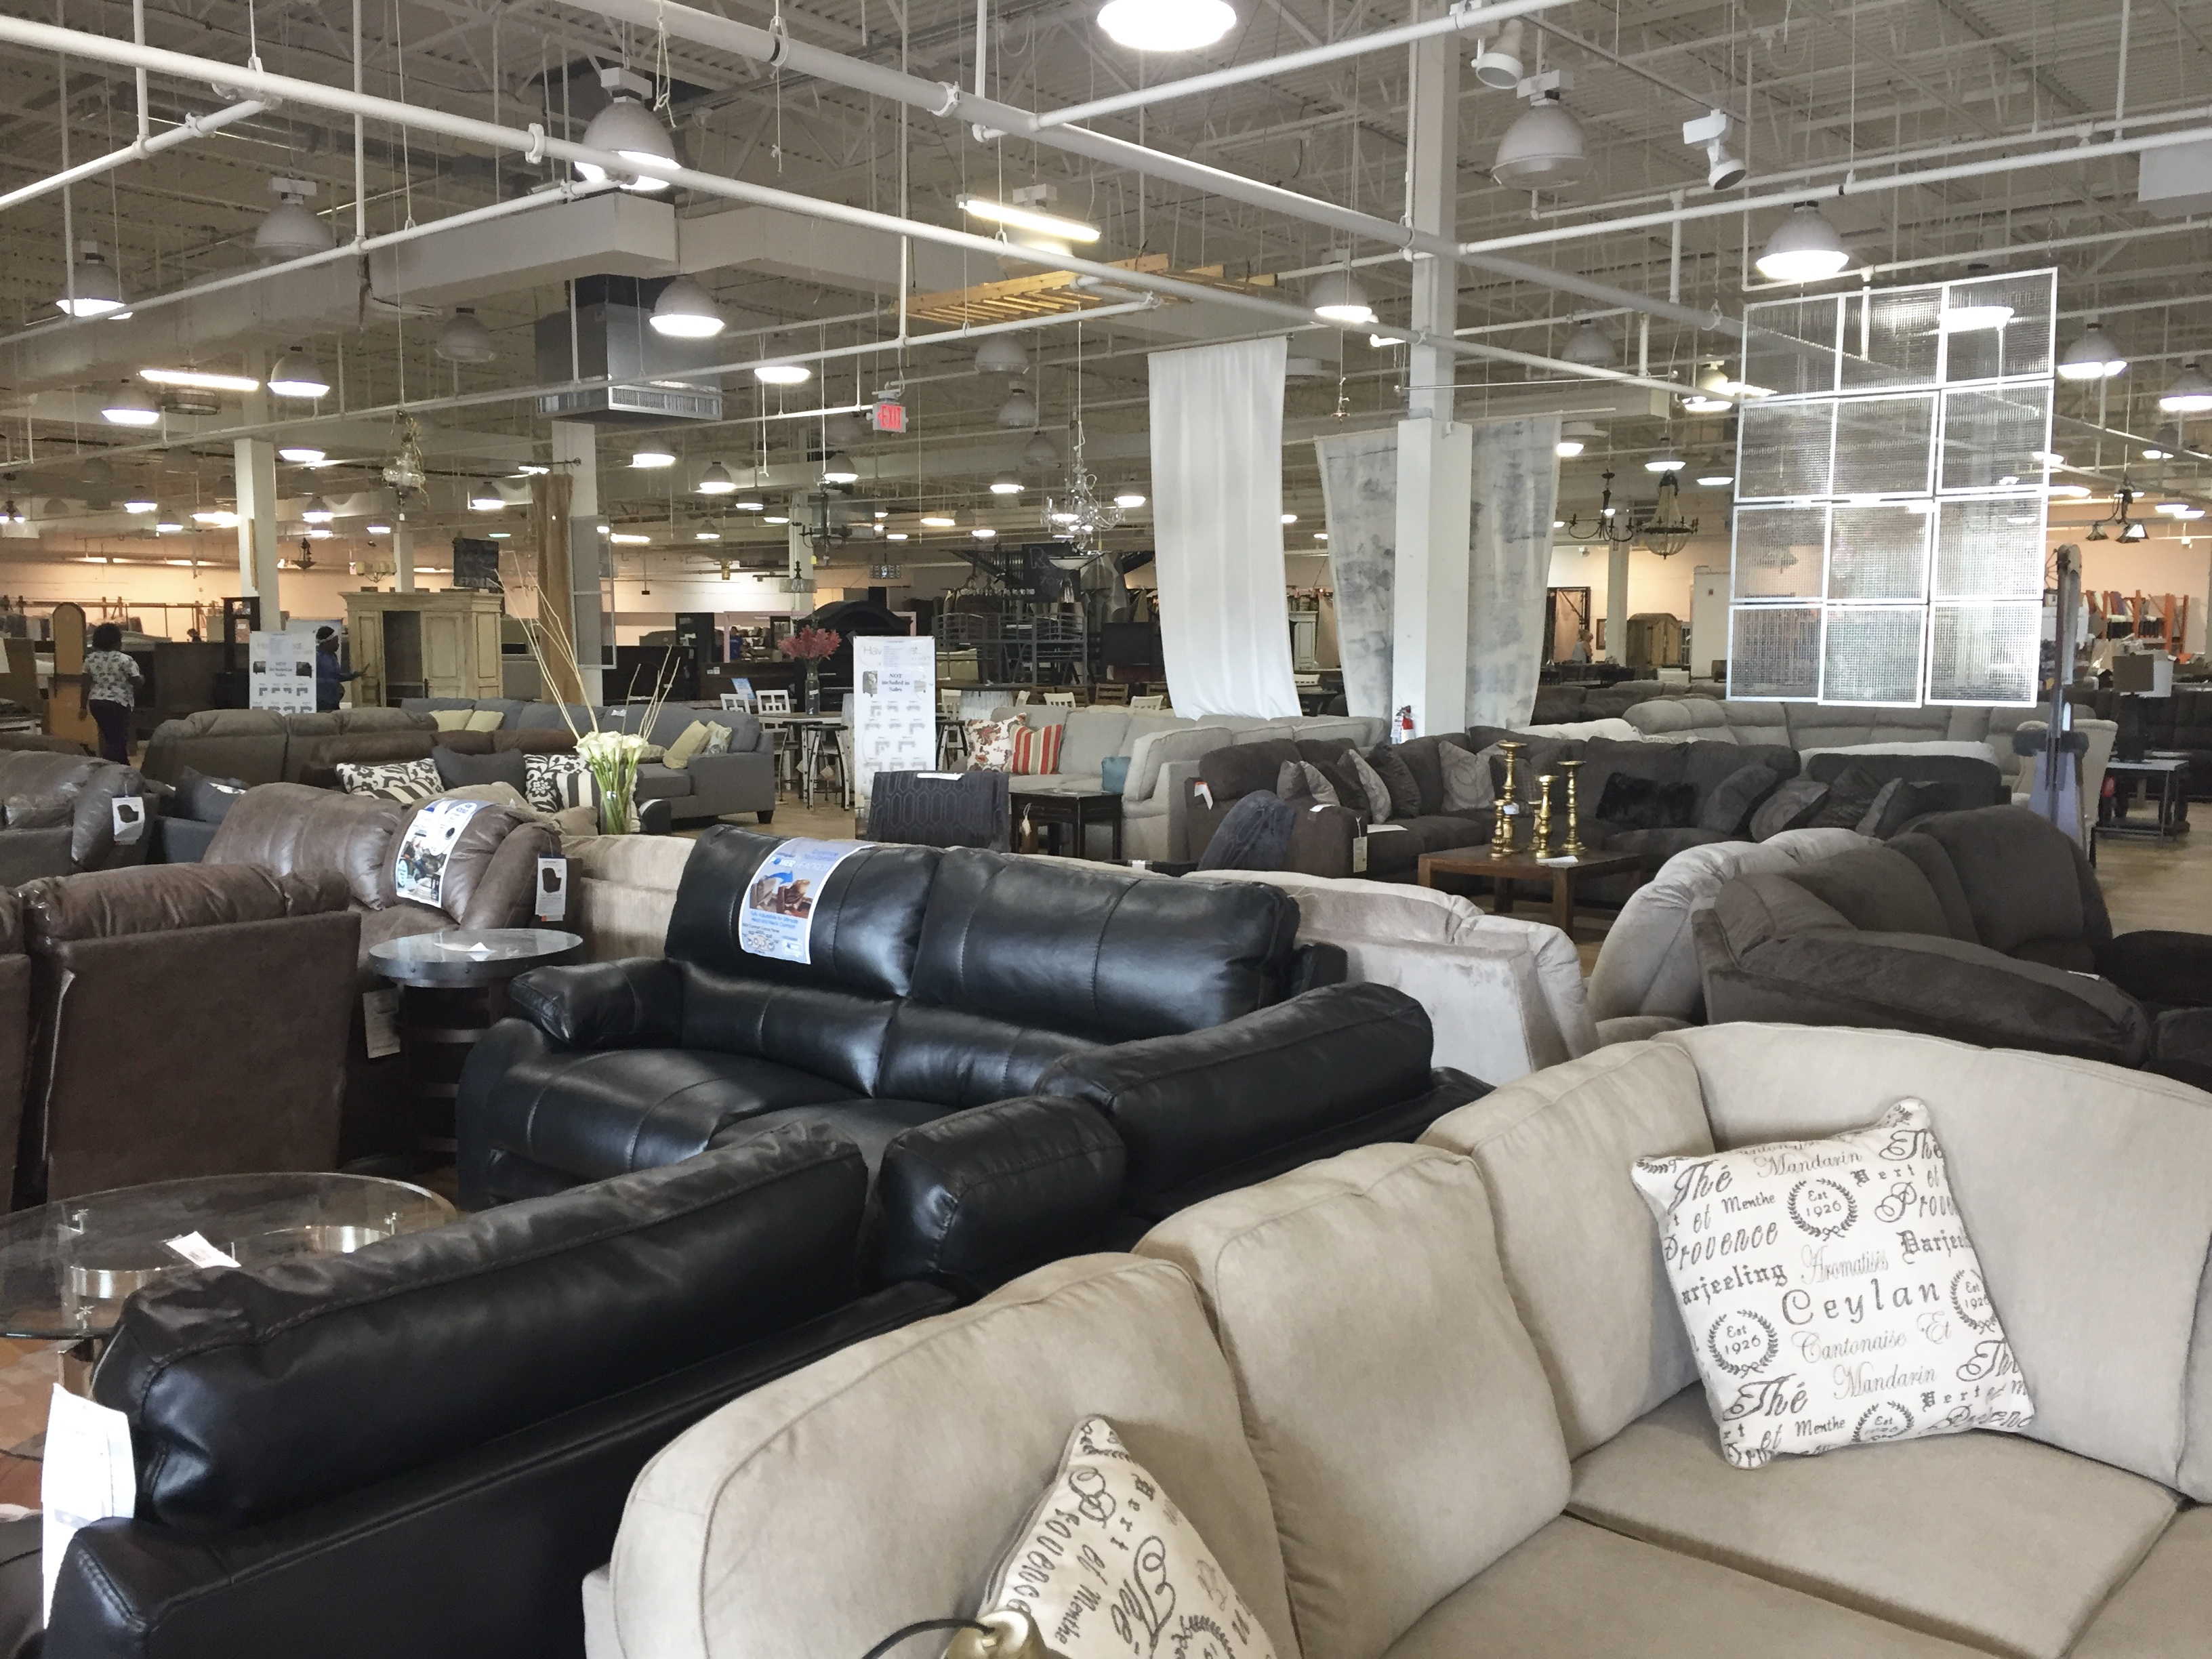 Bargains and Buyouts Cincinnati, OH- furniture store- bargain shopping- liquidation sales- home- decor- decorating